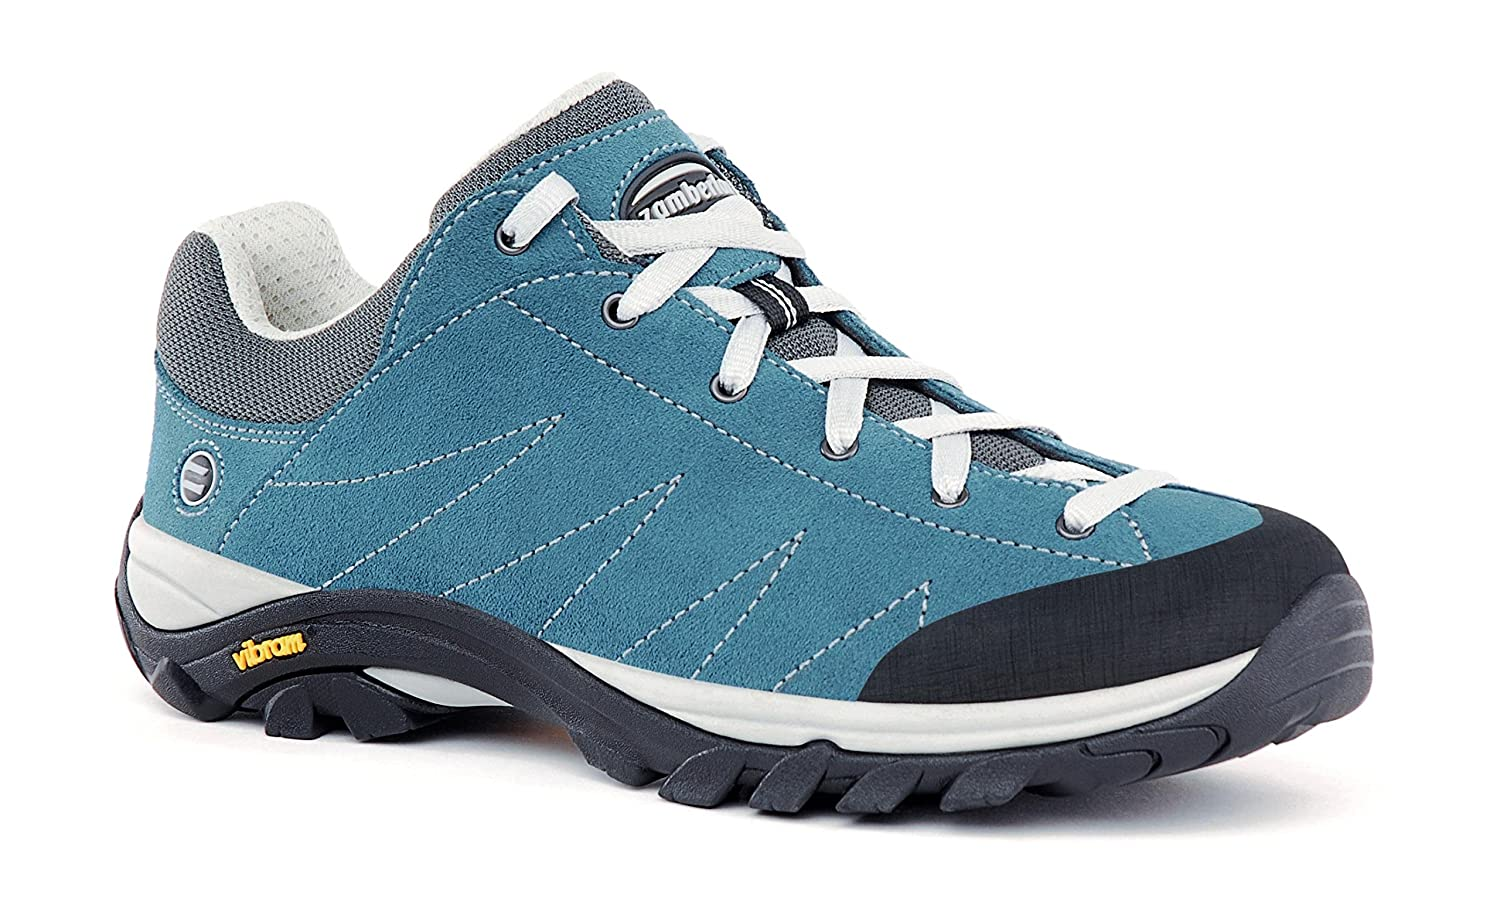 Zamberlan Women's 103 Hike LITE RR Leather Hiking Shoes B01IXVOSI2 11 B(M) US|Octane